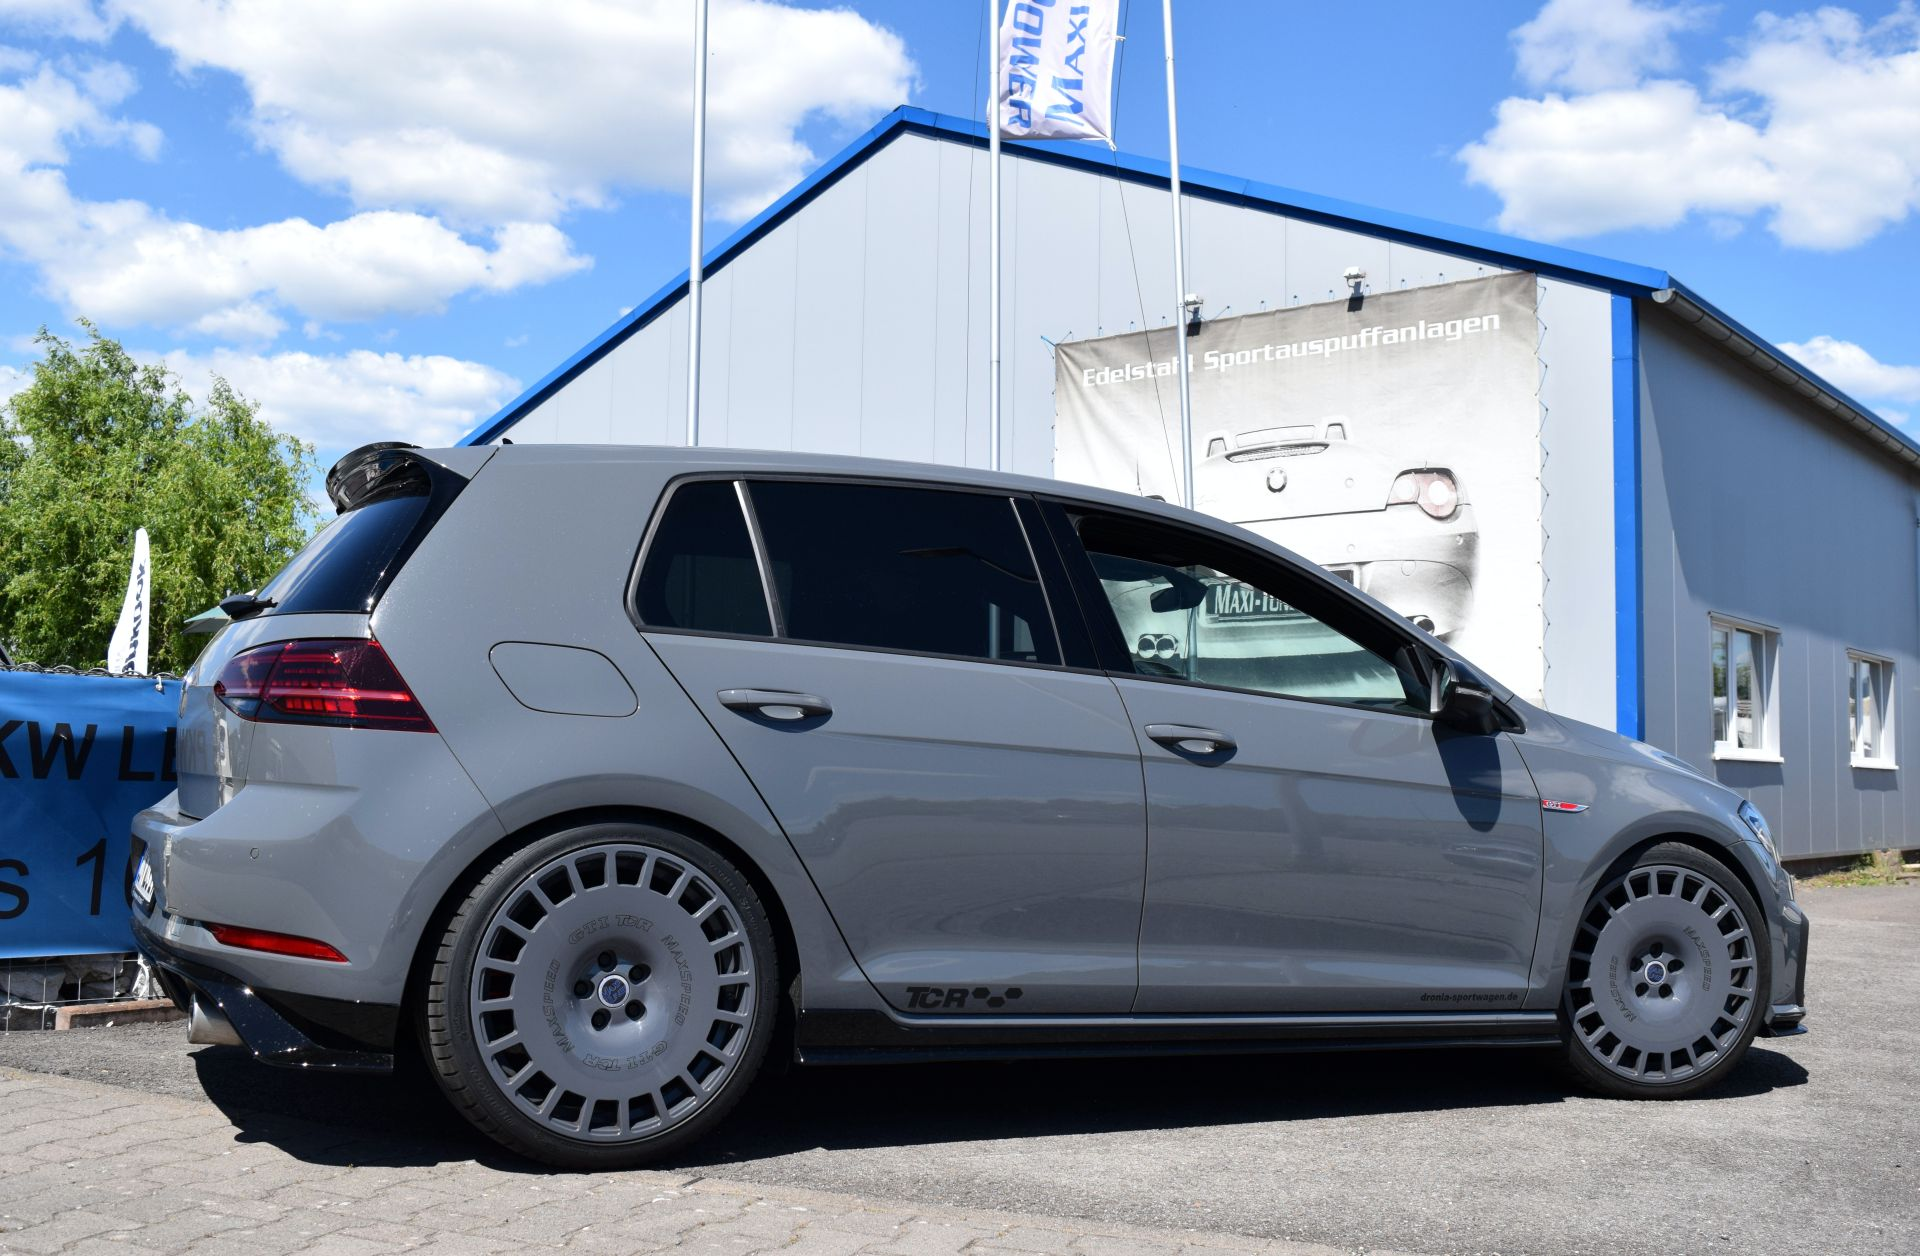 Mk7 Vw Golf Gti Tcr Tuned To 330 Hp But What About Those Wheels Carscoops